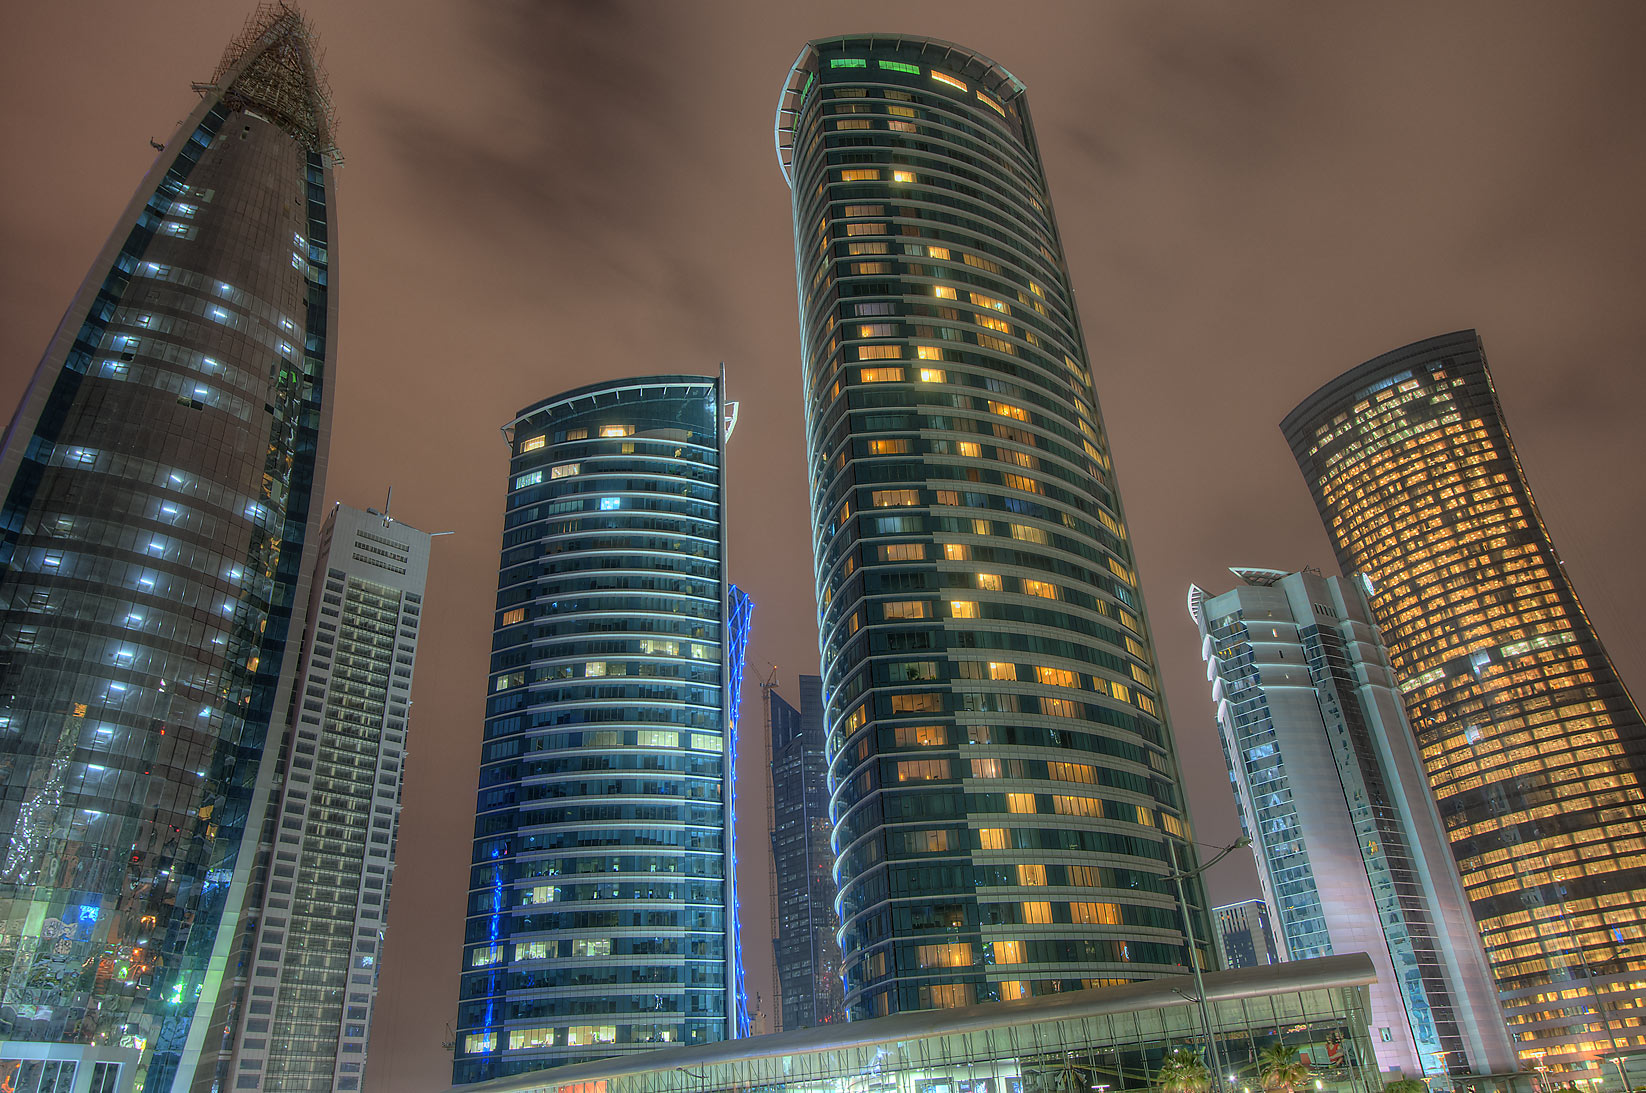 West Bay towers from a backyard of City Center Mall. Doha, Qatar